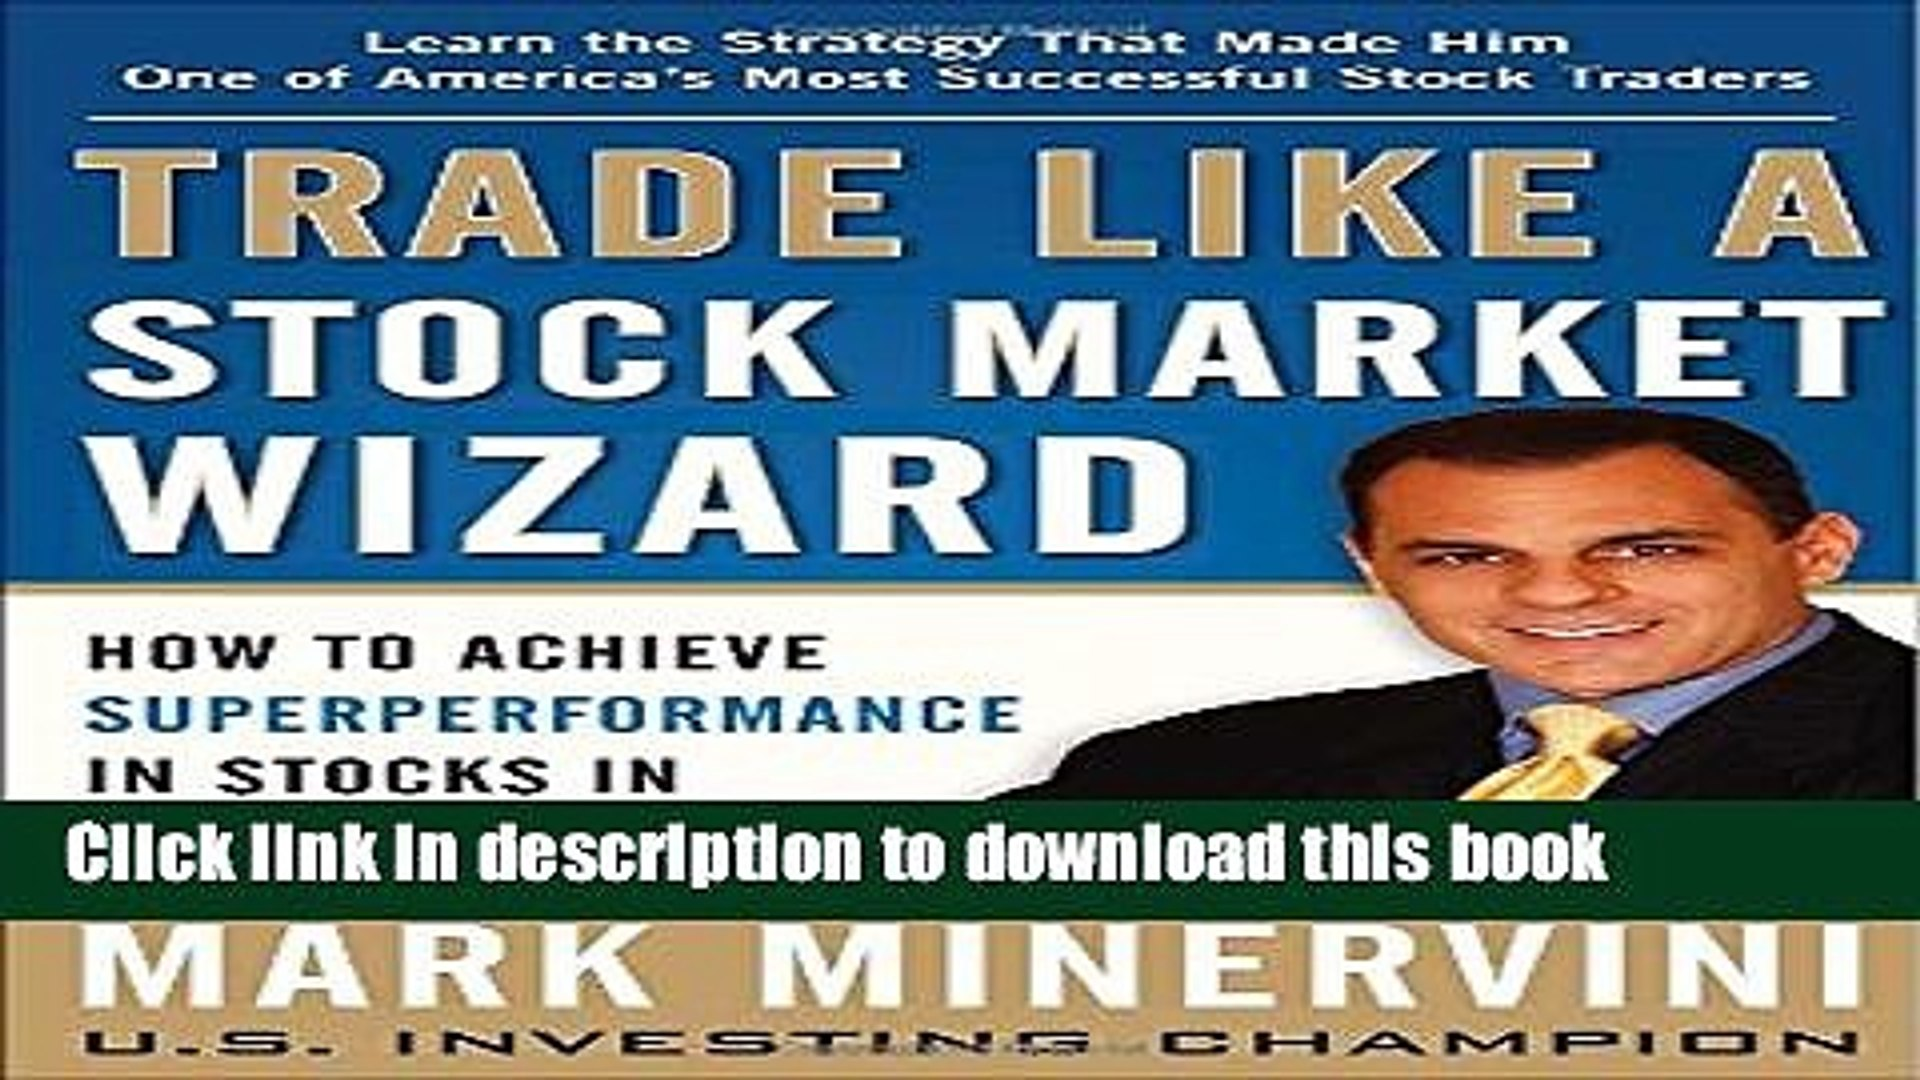 Ebook Trade Like a Stock Market Wizard: How to Achieve Super Performance in Stocks in Any Market